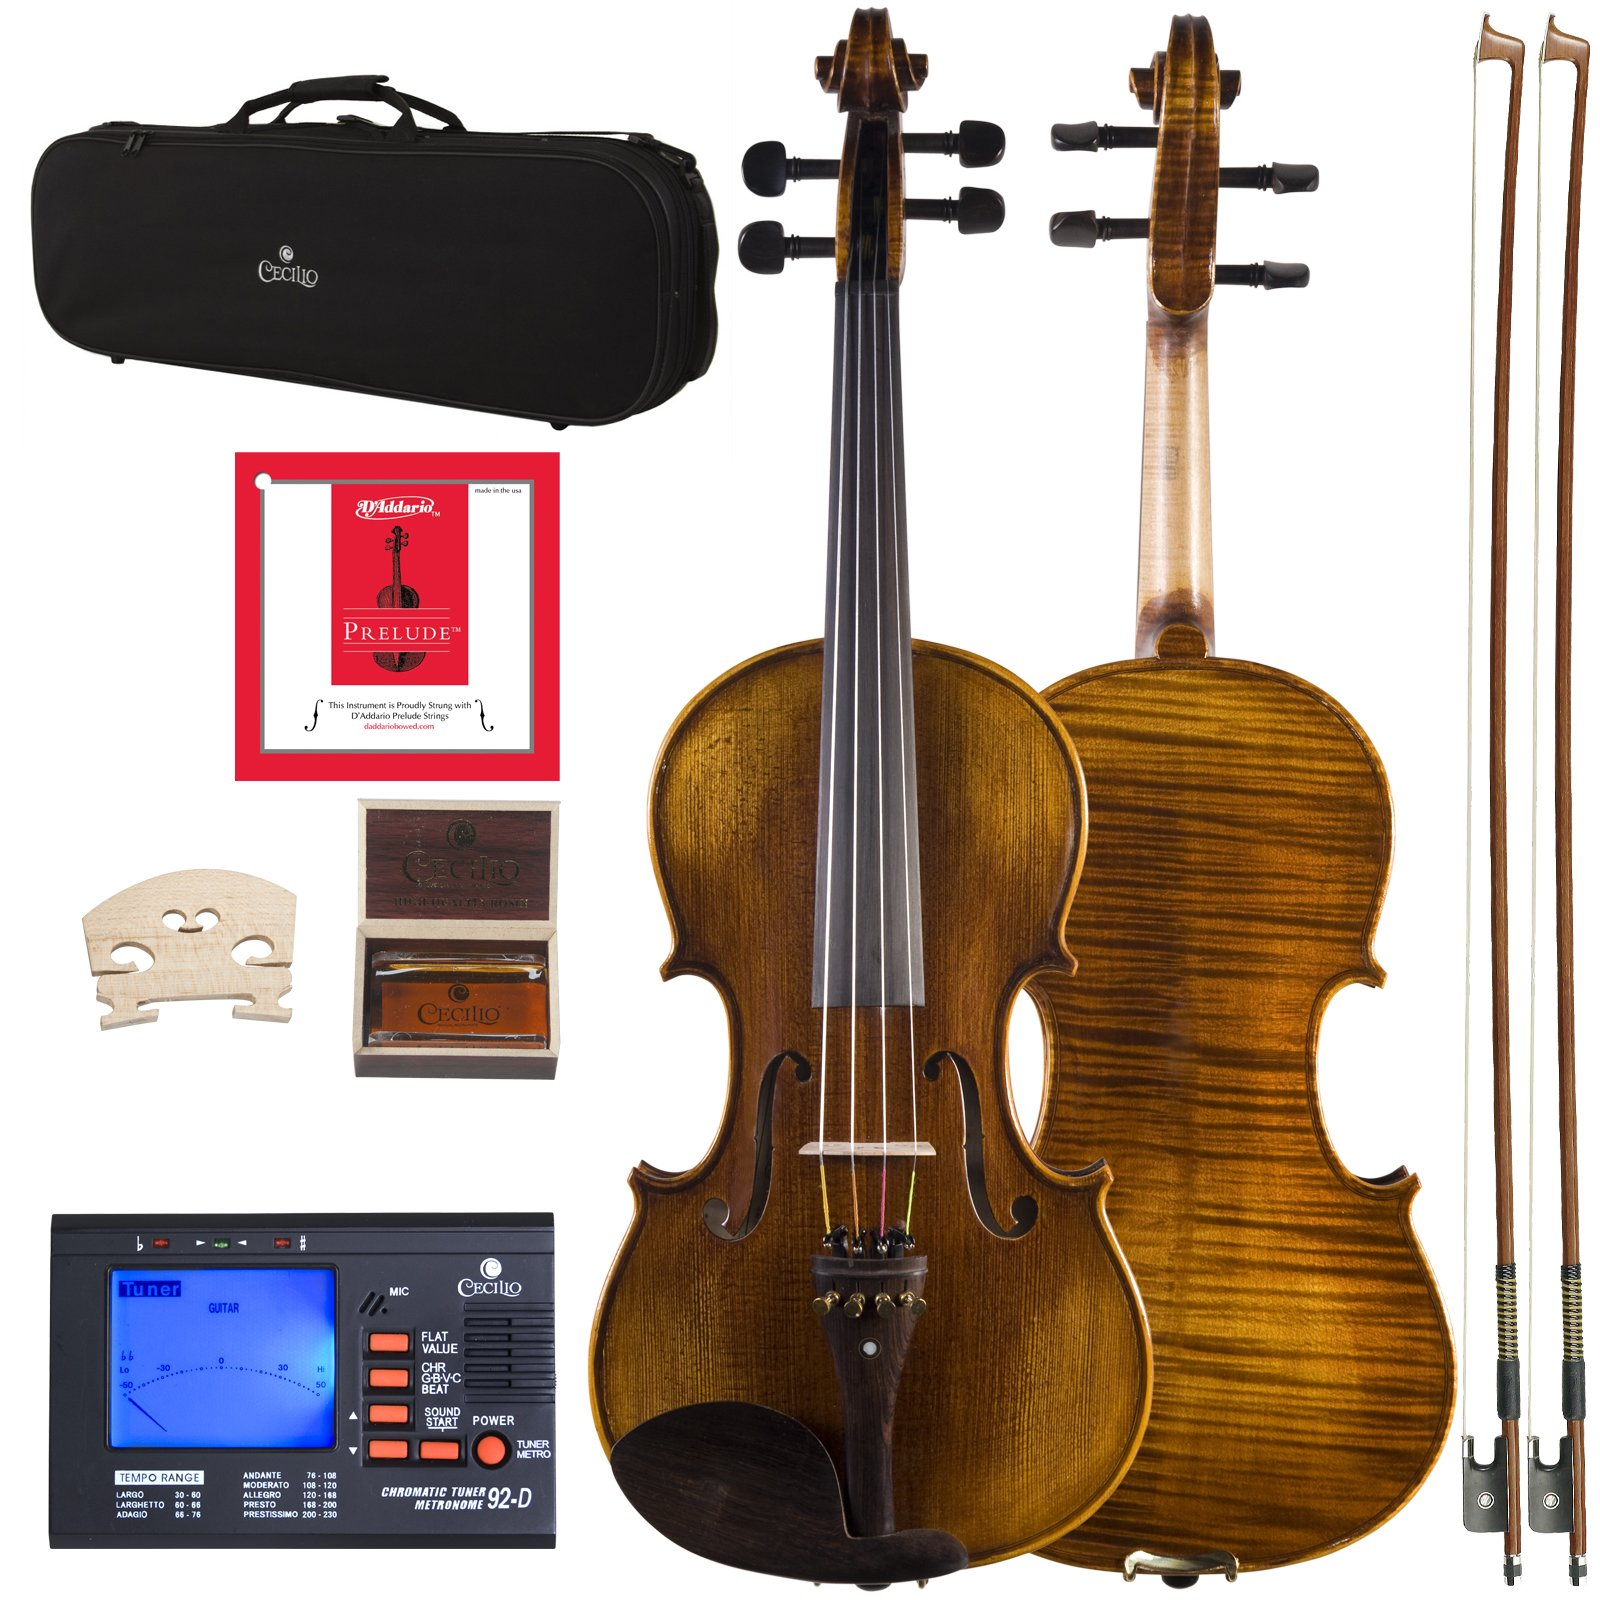 Cecilio 16 Inch Viola Strung with D'Addario Prelude Strings, Finished with Hand Oil Rubbed and Highly Flamed 2-Piece Back Solidwood, CVA-600